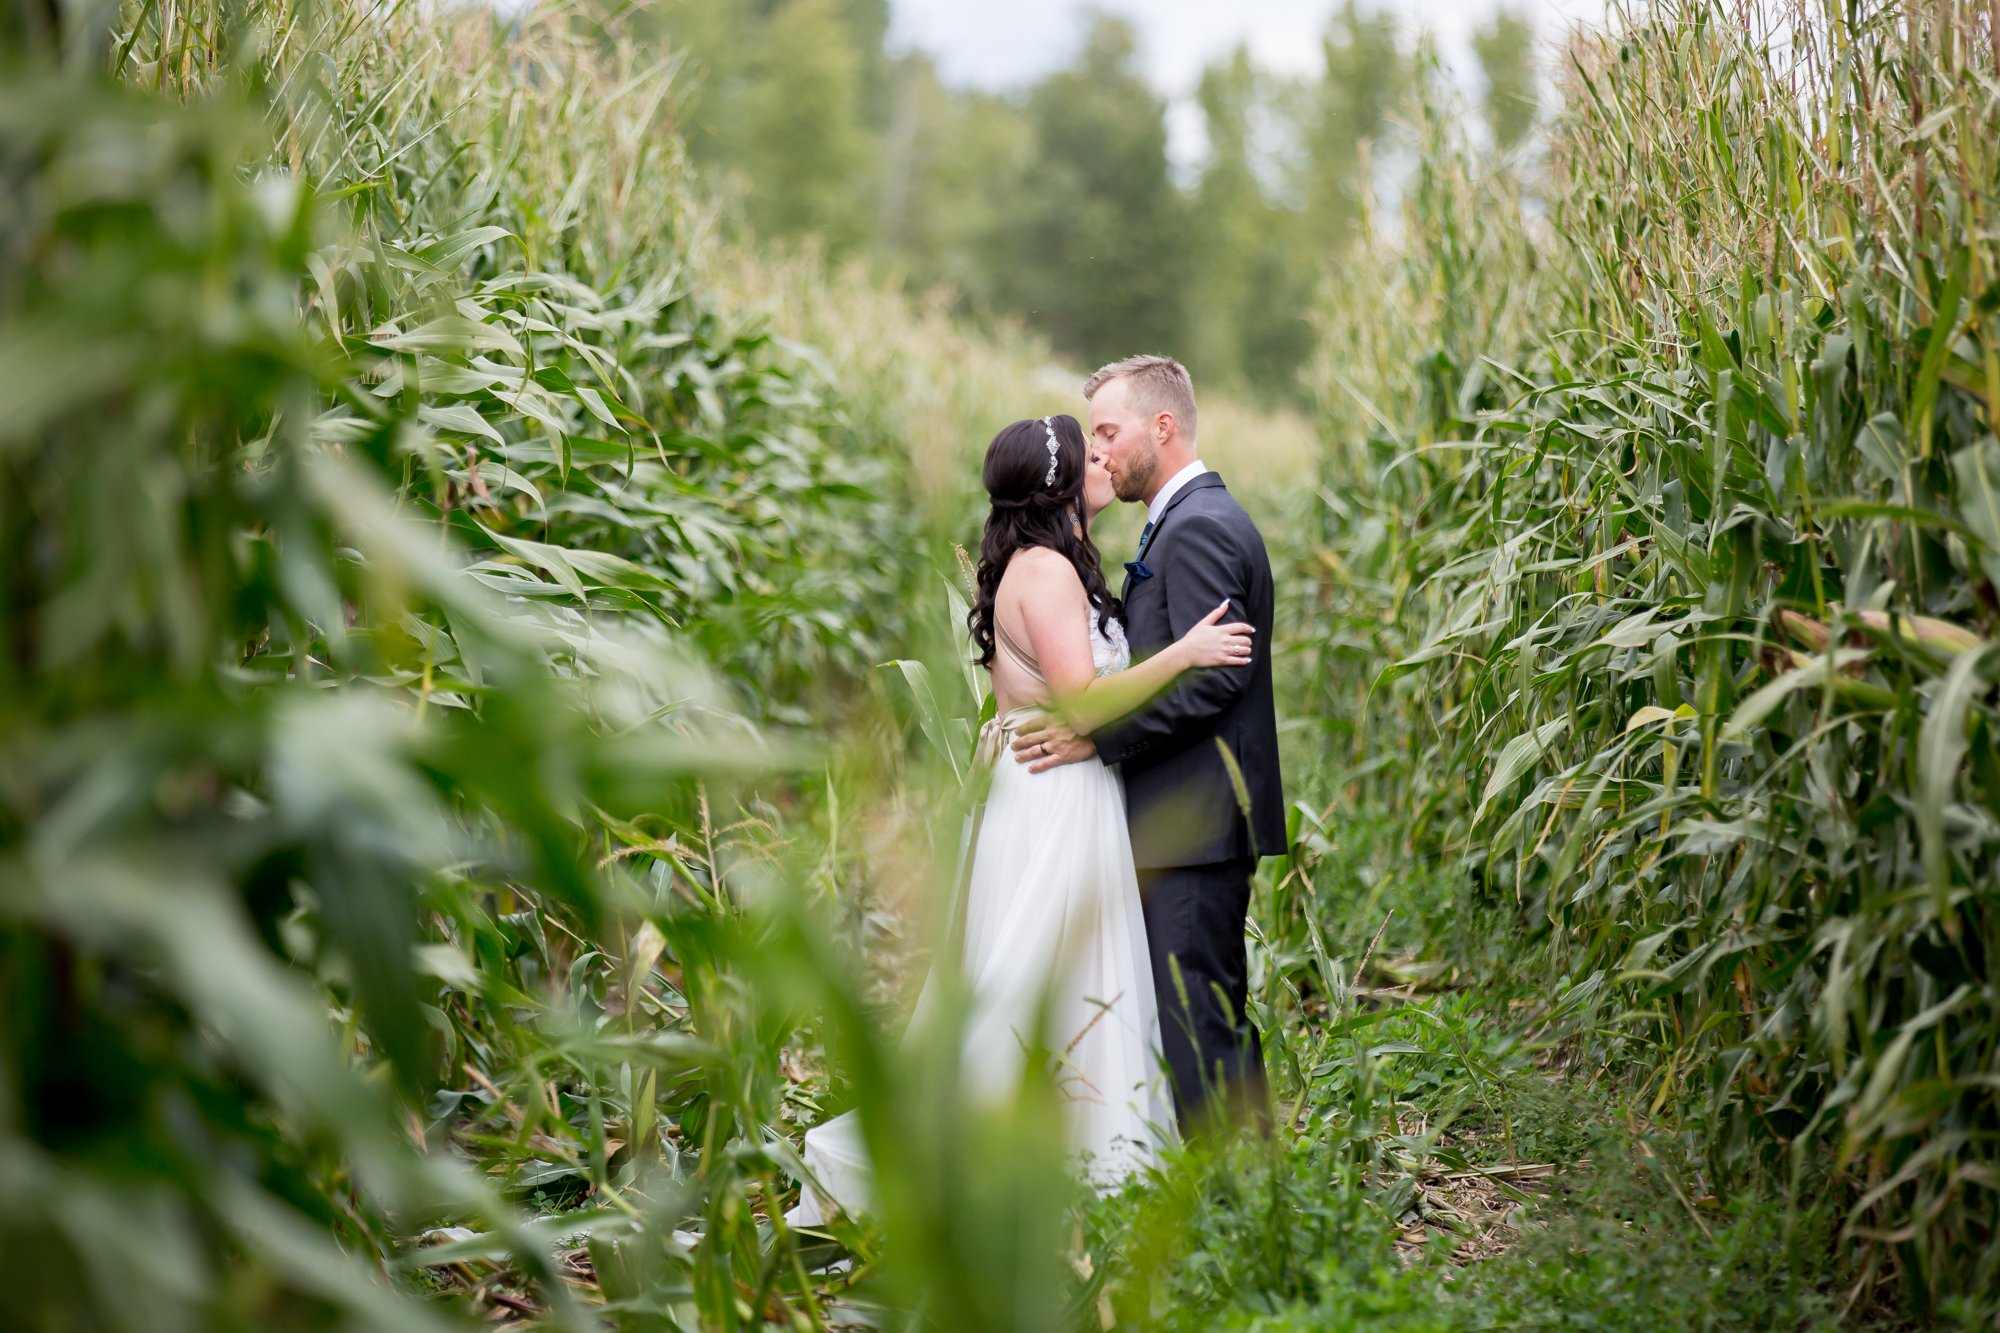 A bride and groom kissing in a corn field